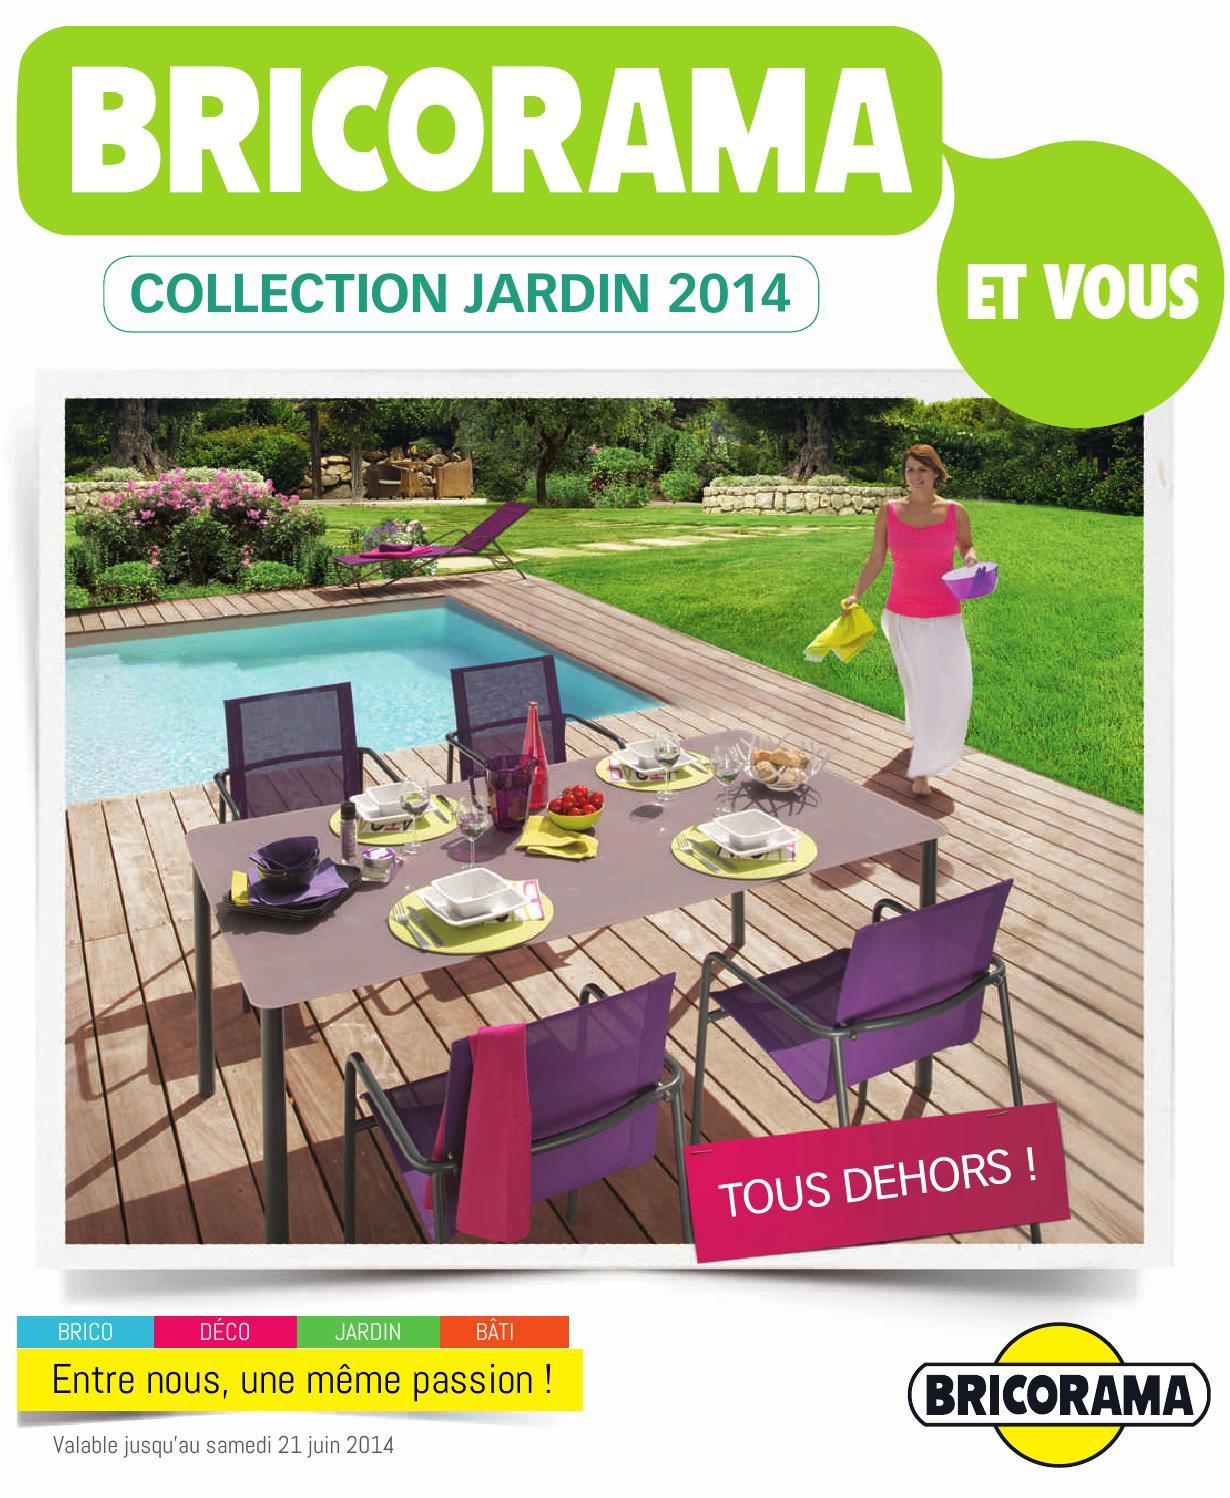 Bricorama catalogue 12mars 21june2014 by PromoCatalogues.com - issuu